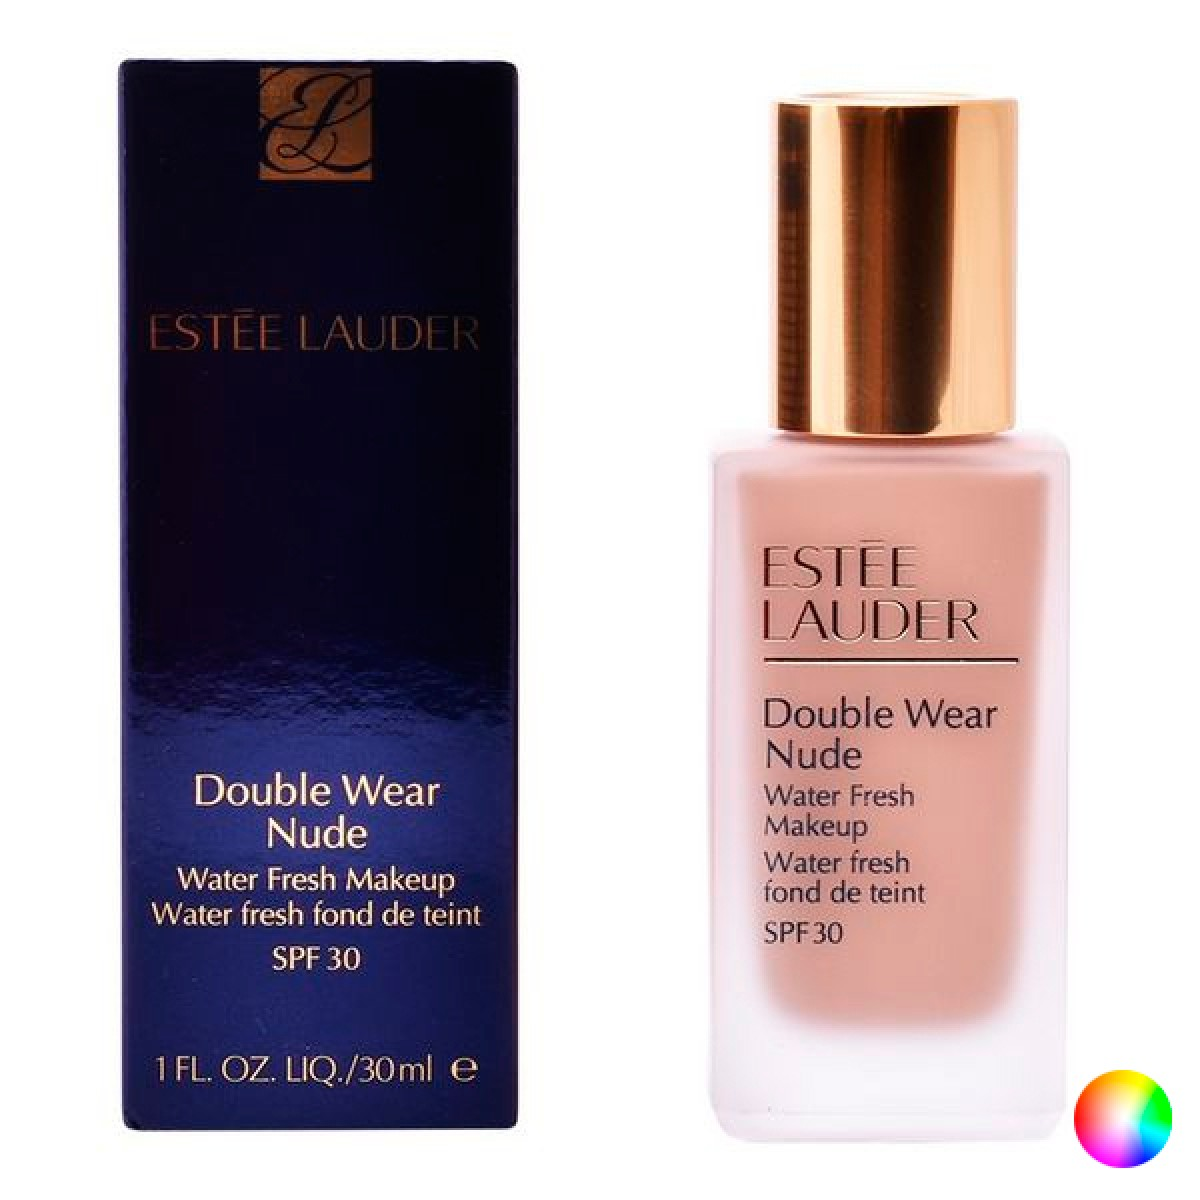 Flydende Makeup Foundation Double Wear Nude Estee Lauder - Farve: 2C2 - almond 30 ml